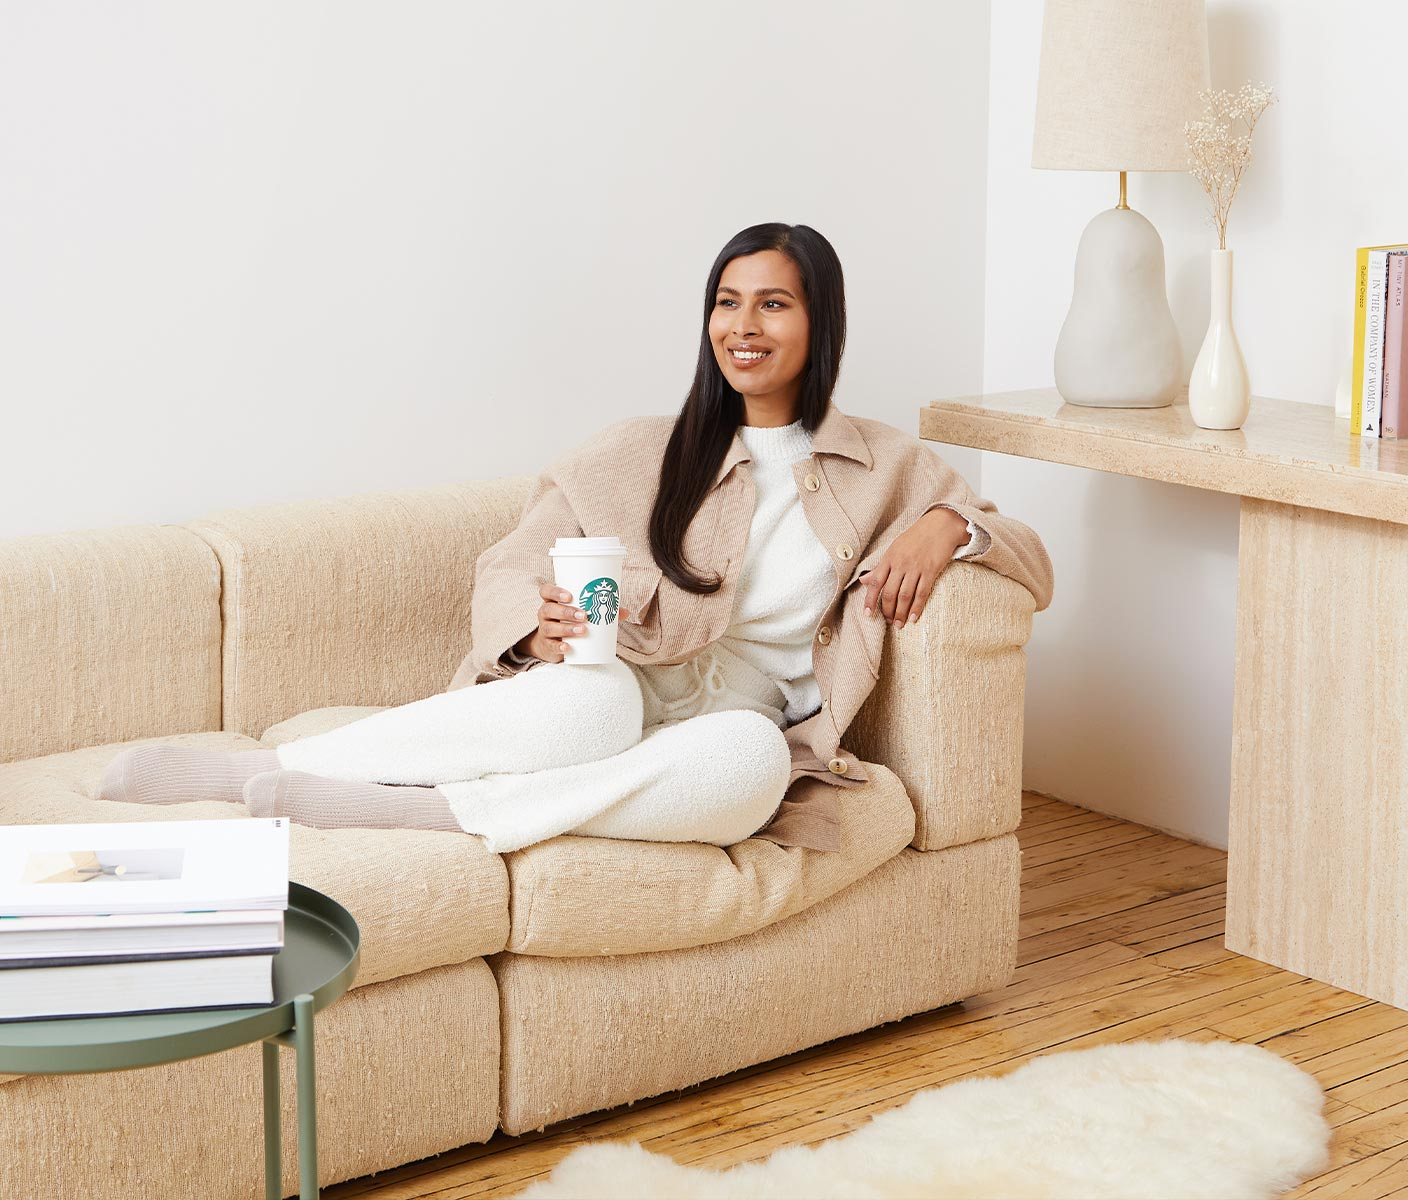 A young woman sits on the couch in her warm, brightly lit home holding her Starbucks to go order and smiling optimistically.